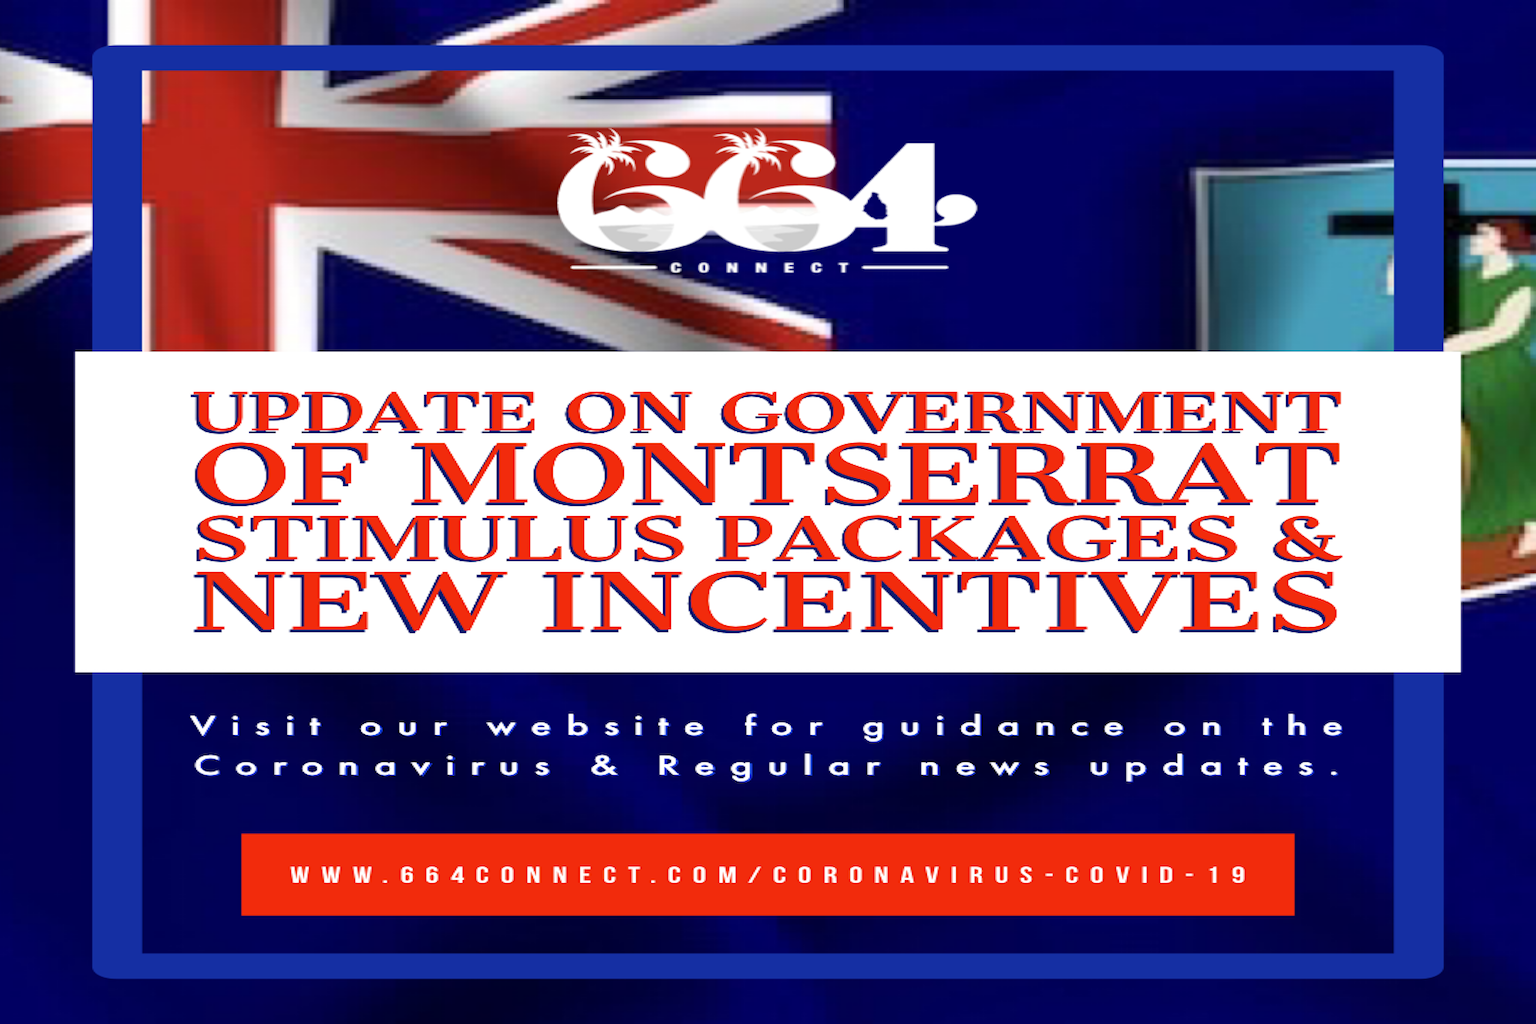 Update on Government of Montserrat Stimulus Packages